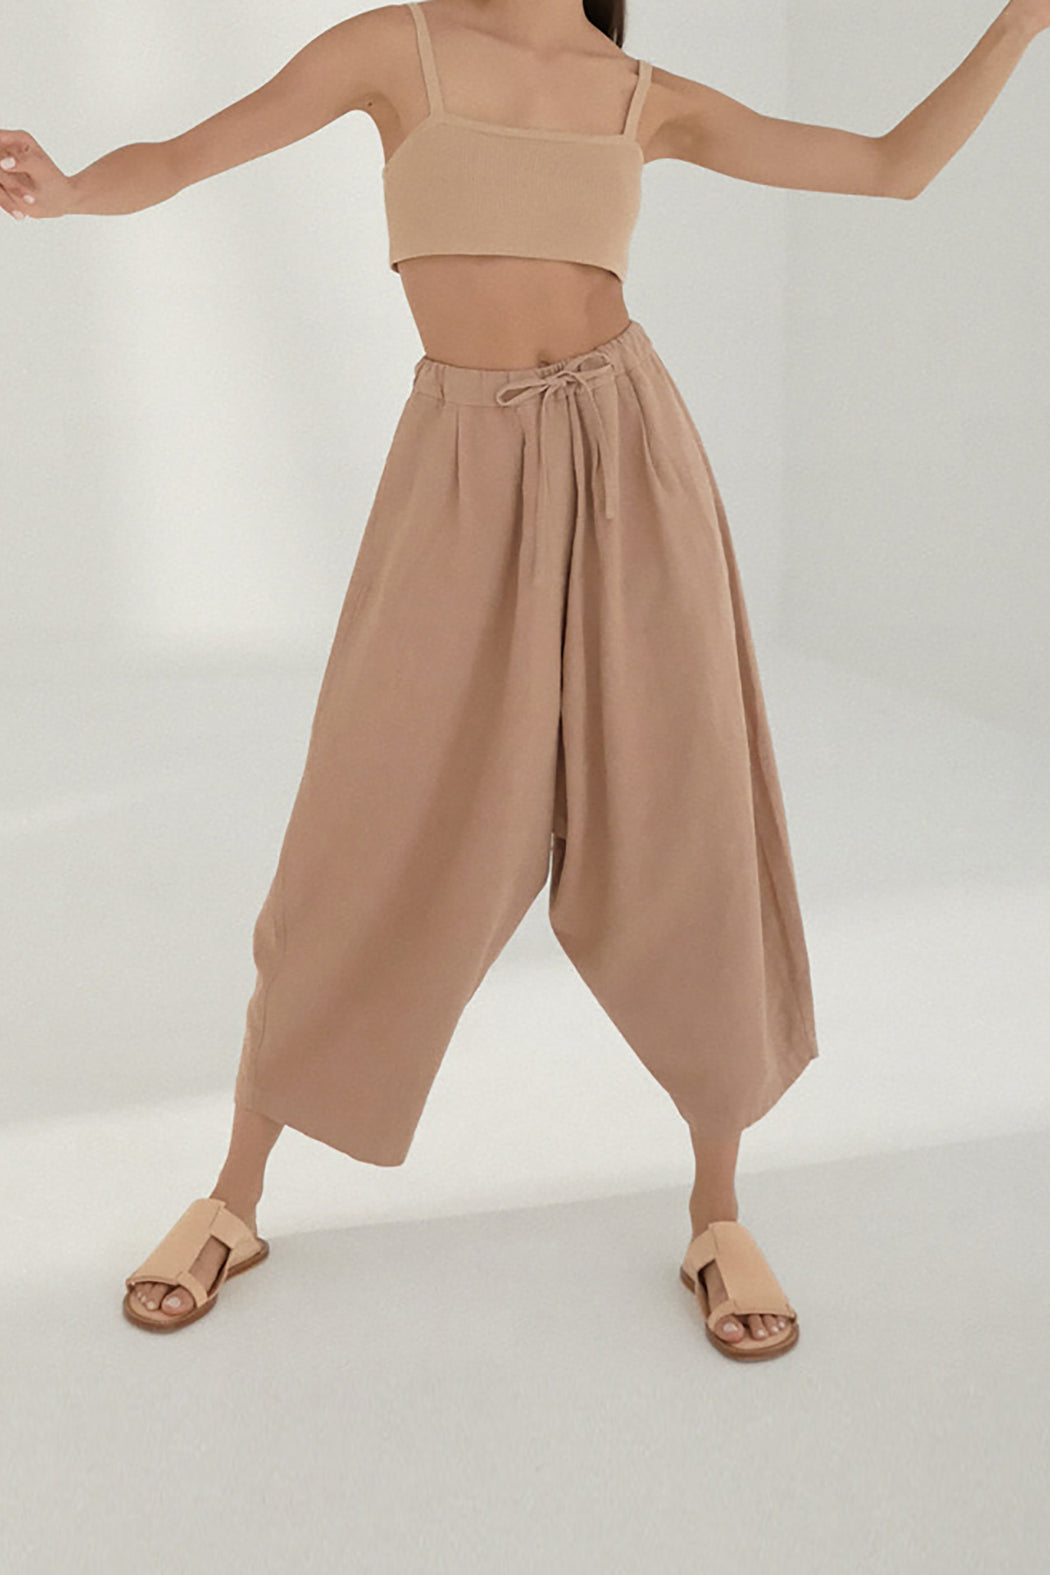 Mónica Cordera | MAXI RAMIE PANTS | CORK | Hazel & Rose | Minneapolis